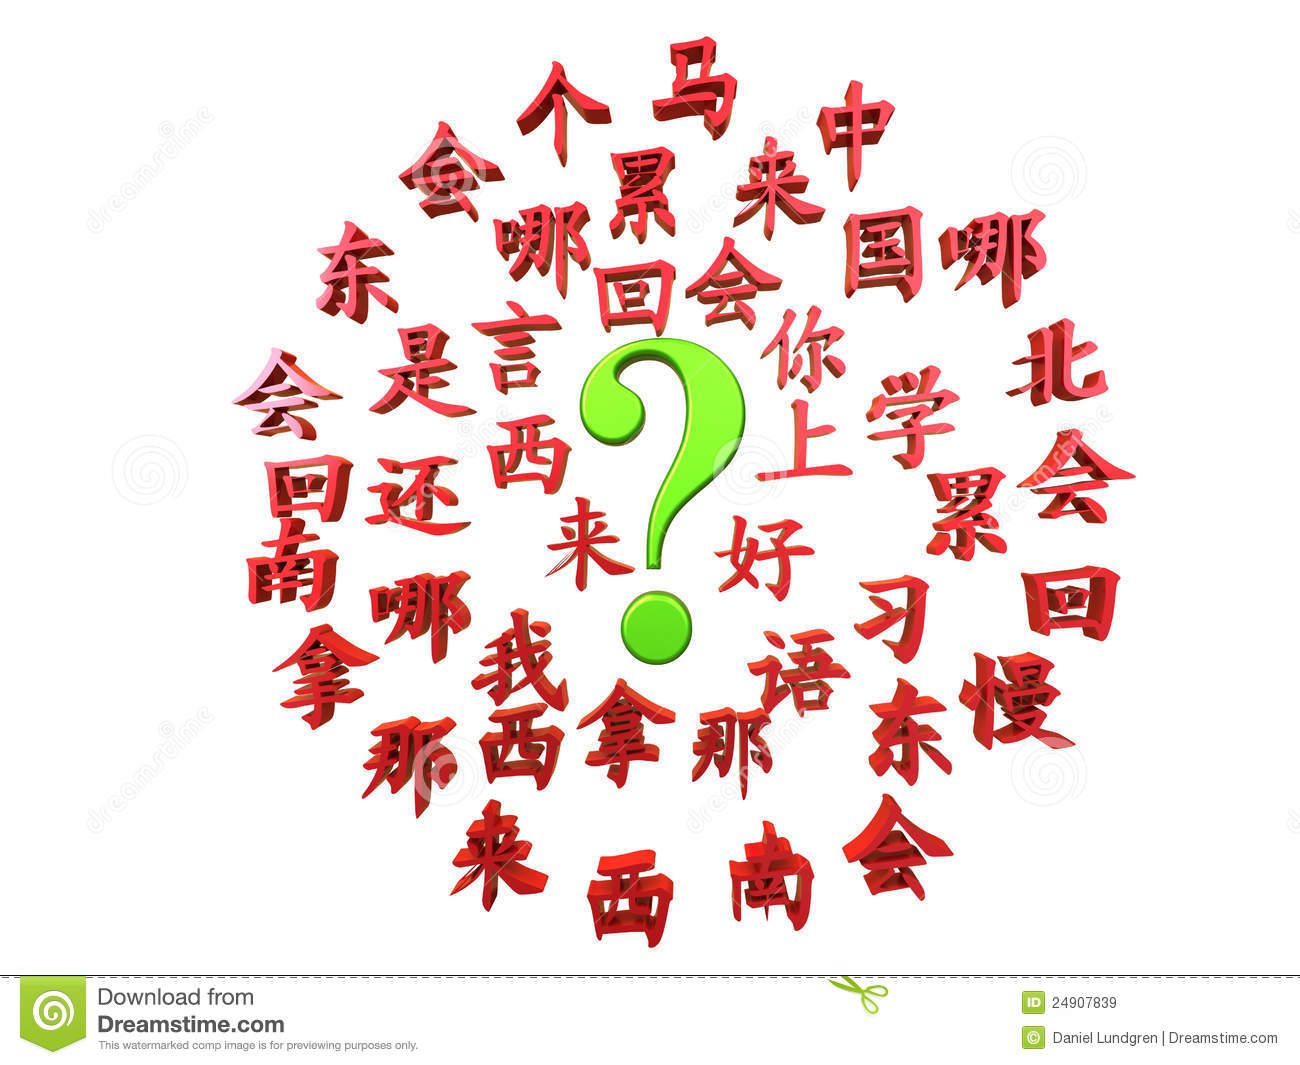 Learn Mandarin - Free downloads and reviews - CNET ...